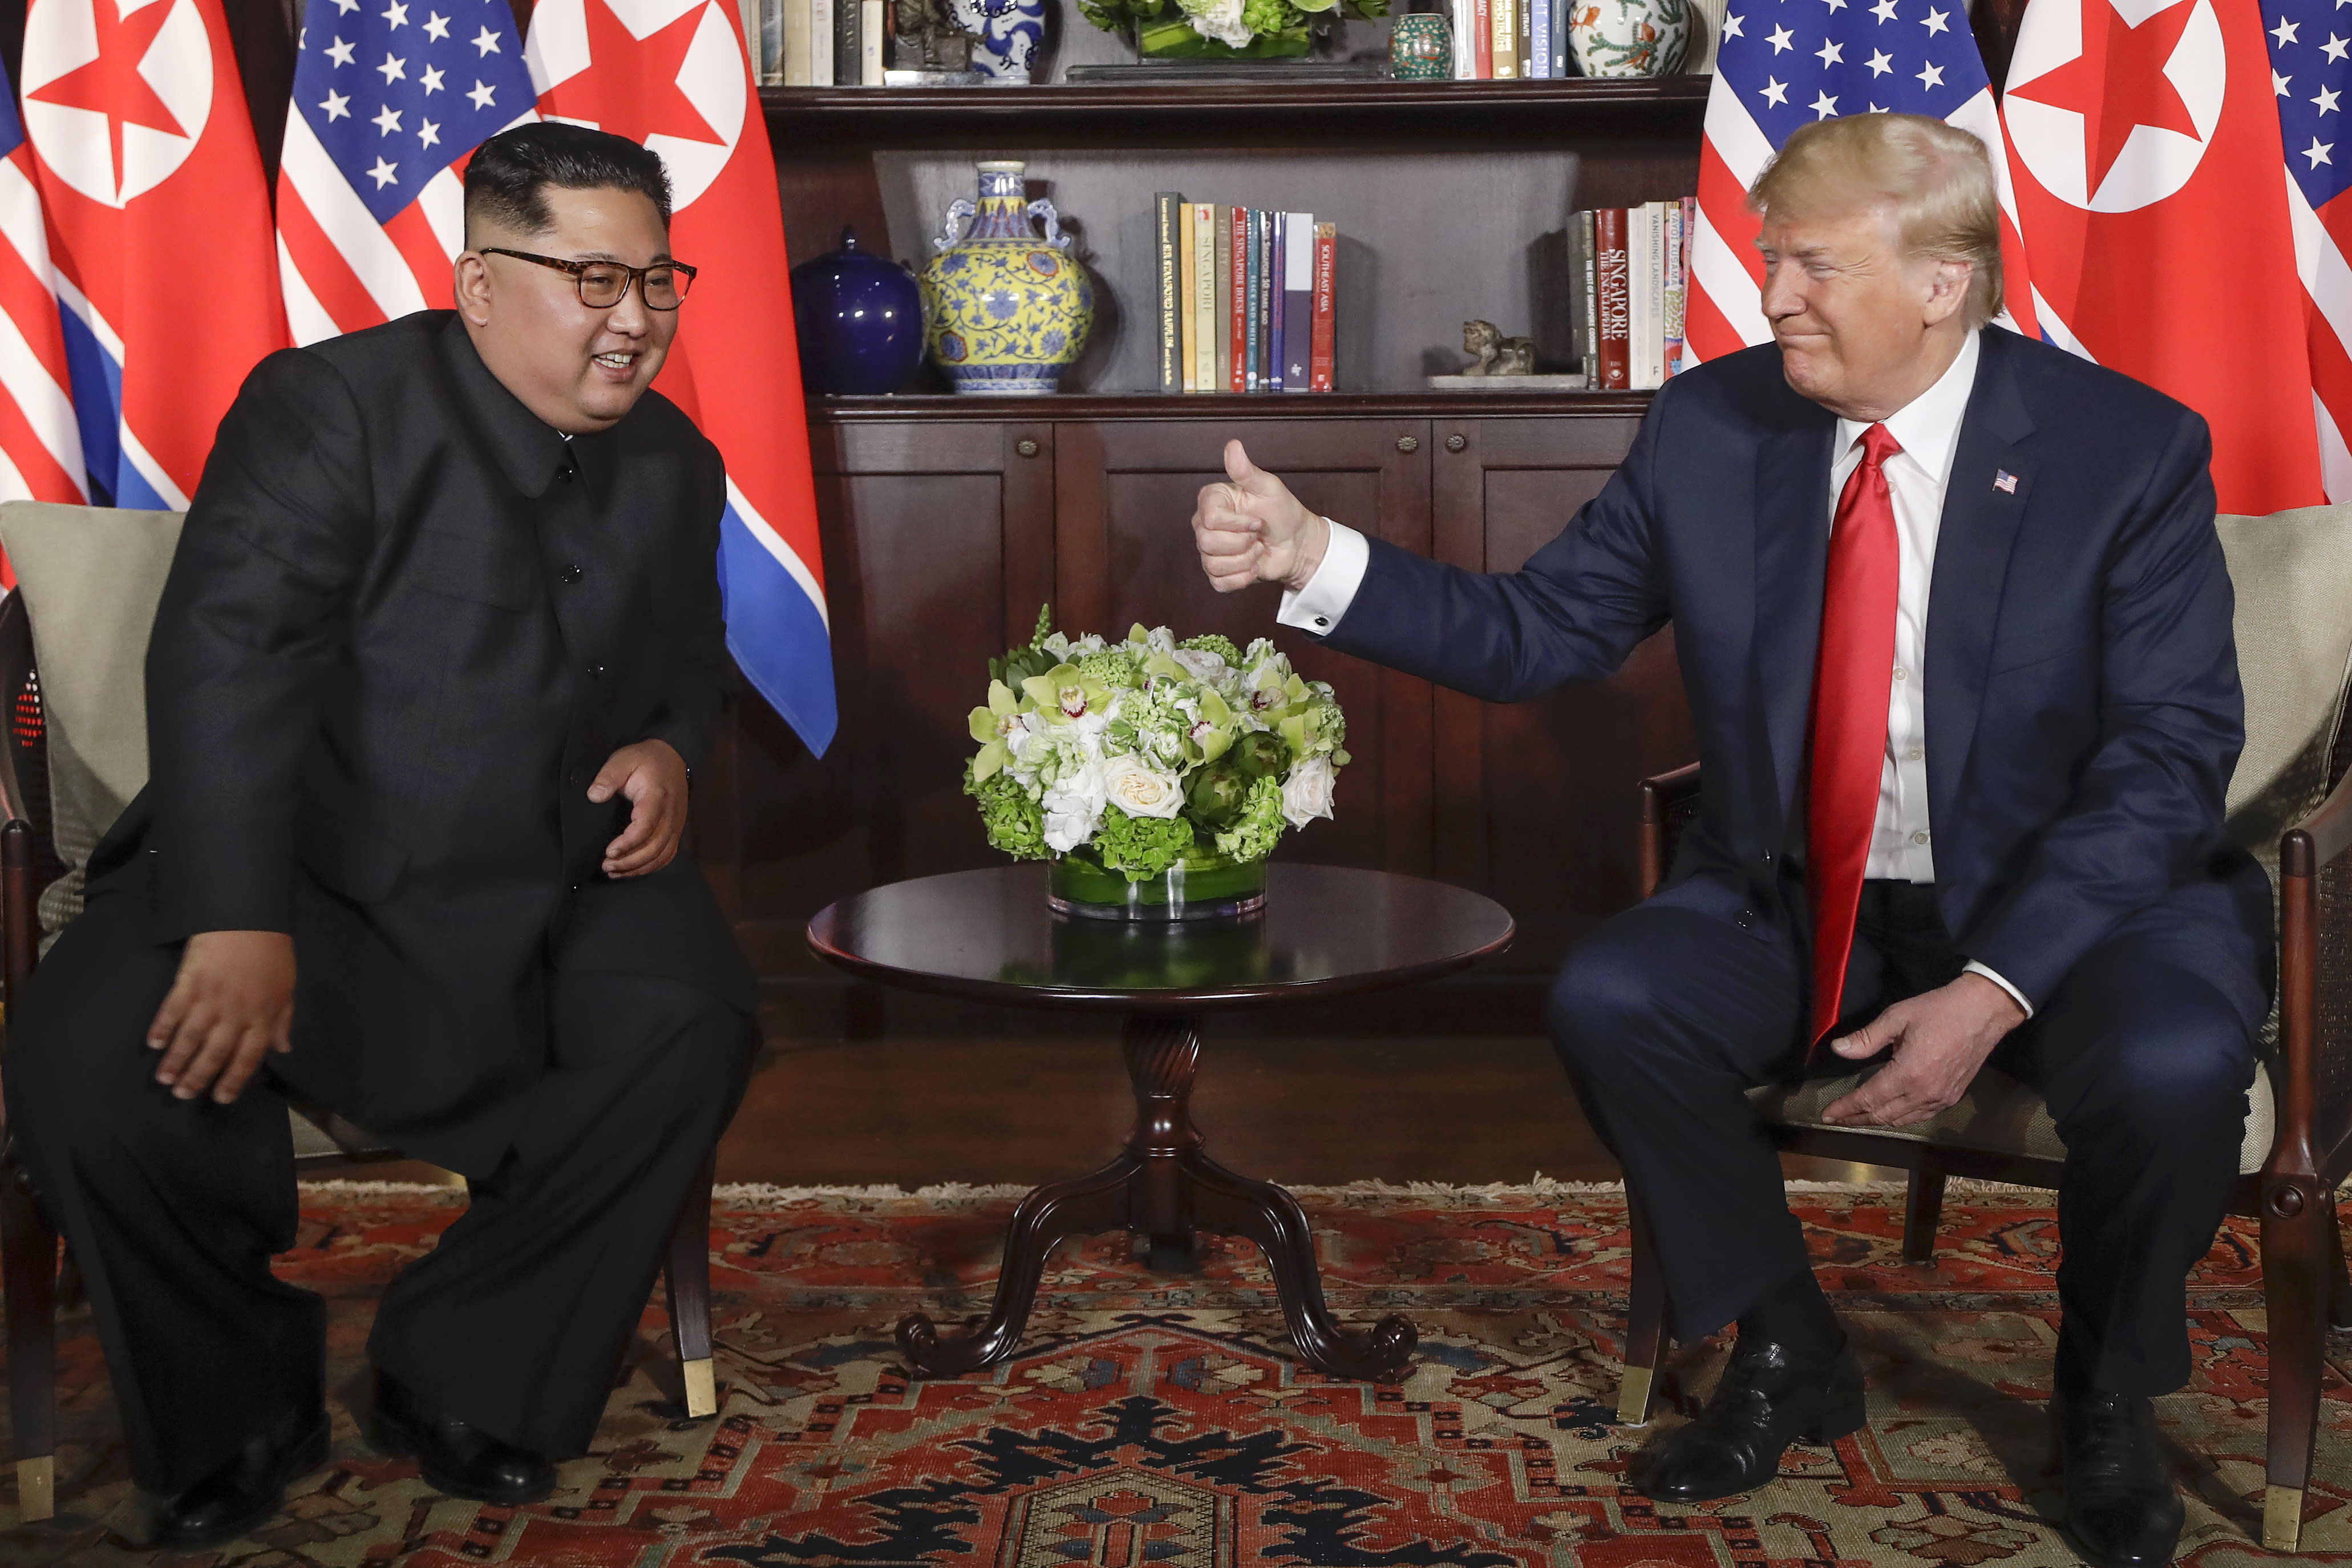 Trump-Kim February Summit Expected to Take Place in Vietnam